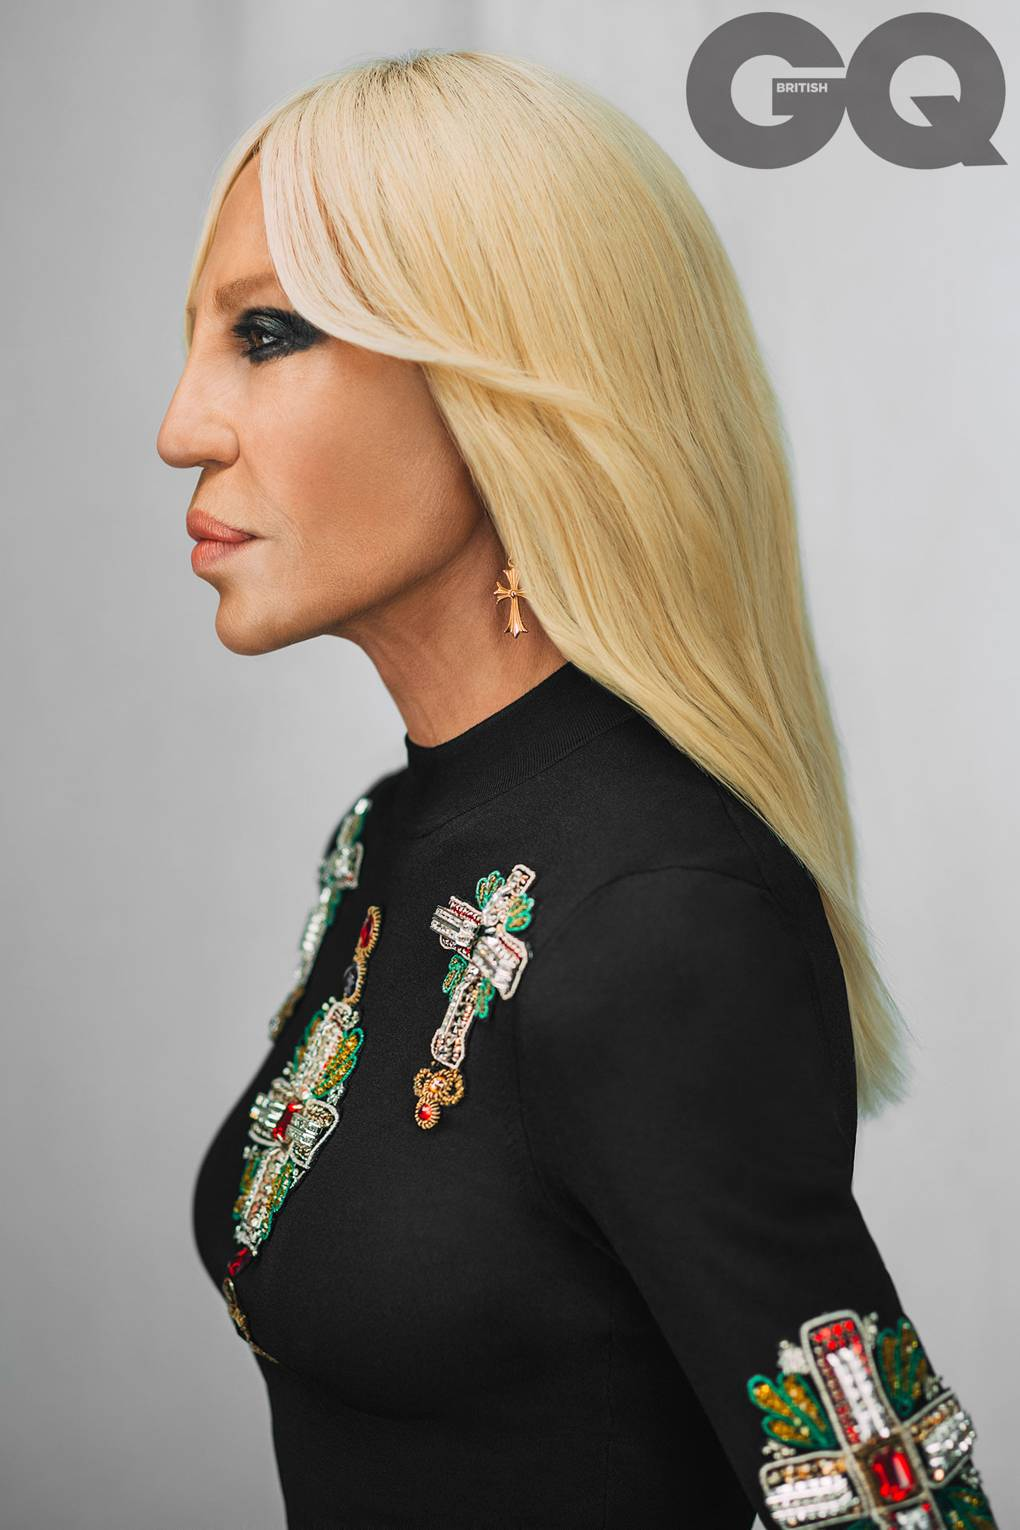 1441b9c2b672 Donatella Versace interview: 'I want the company to stay forever' | British  GQ